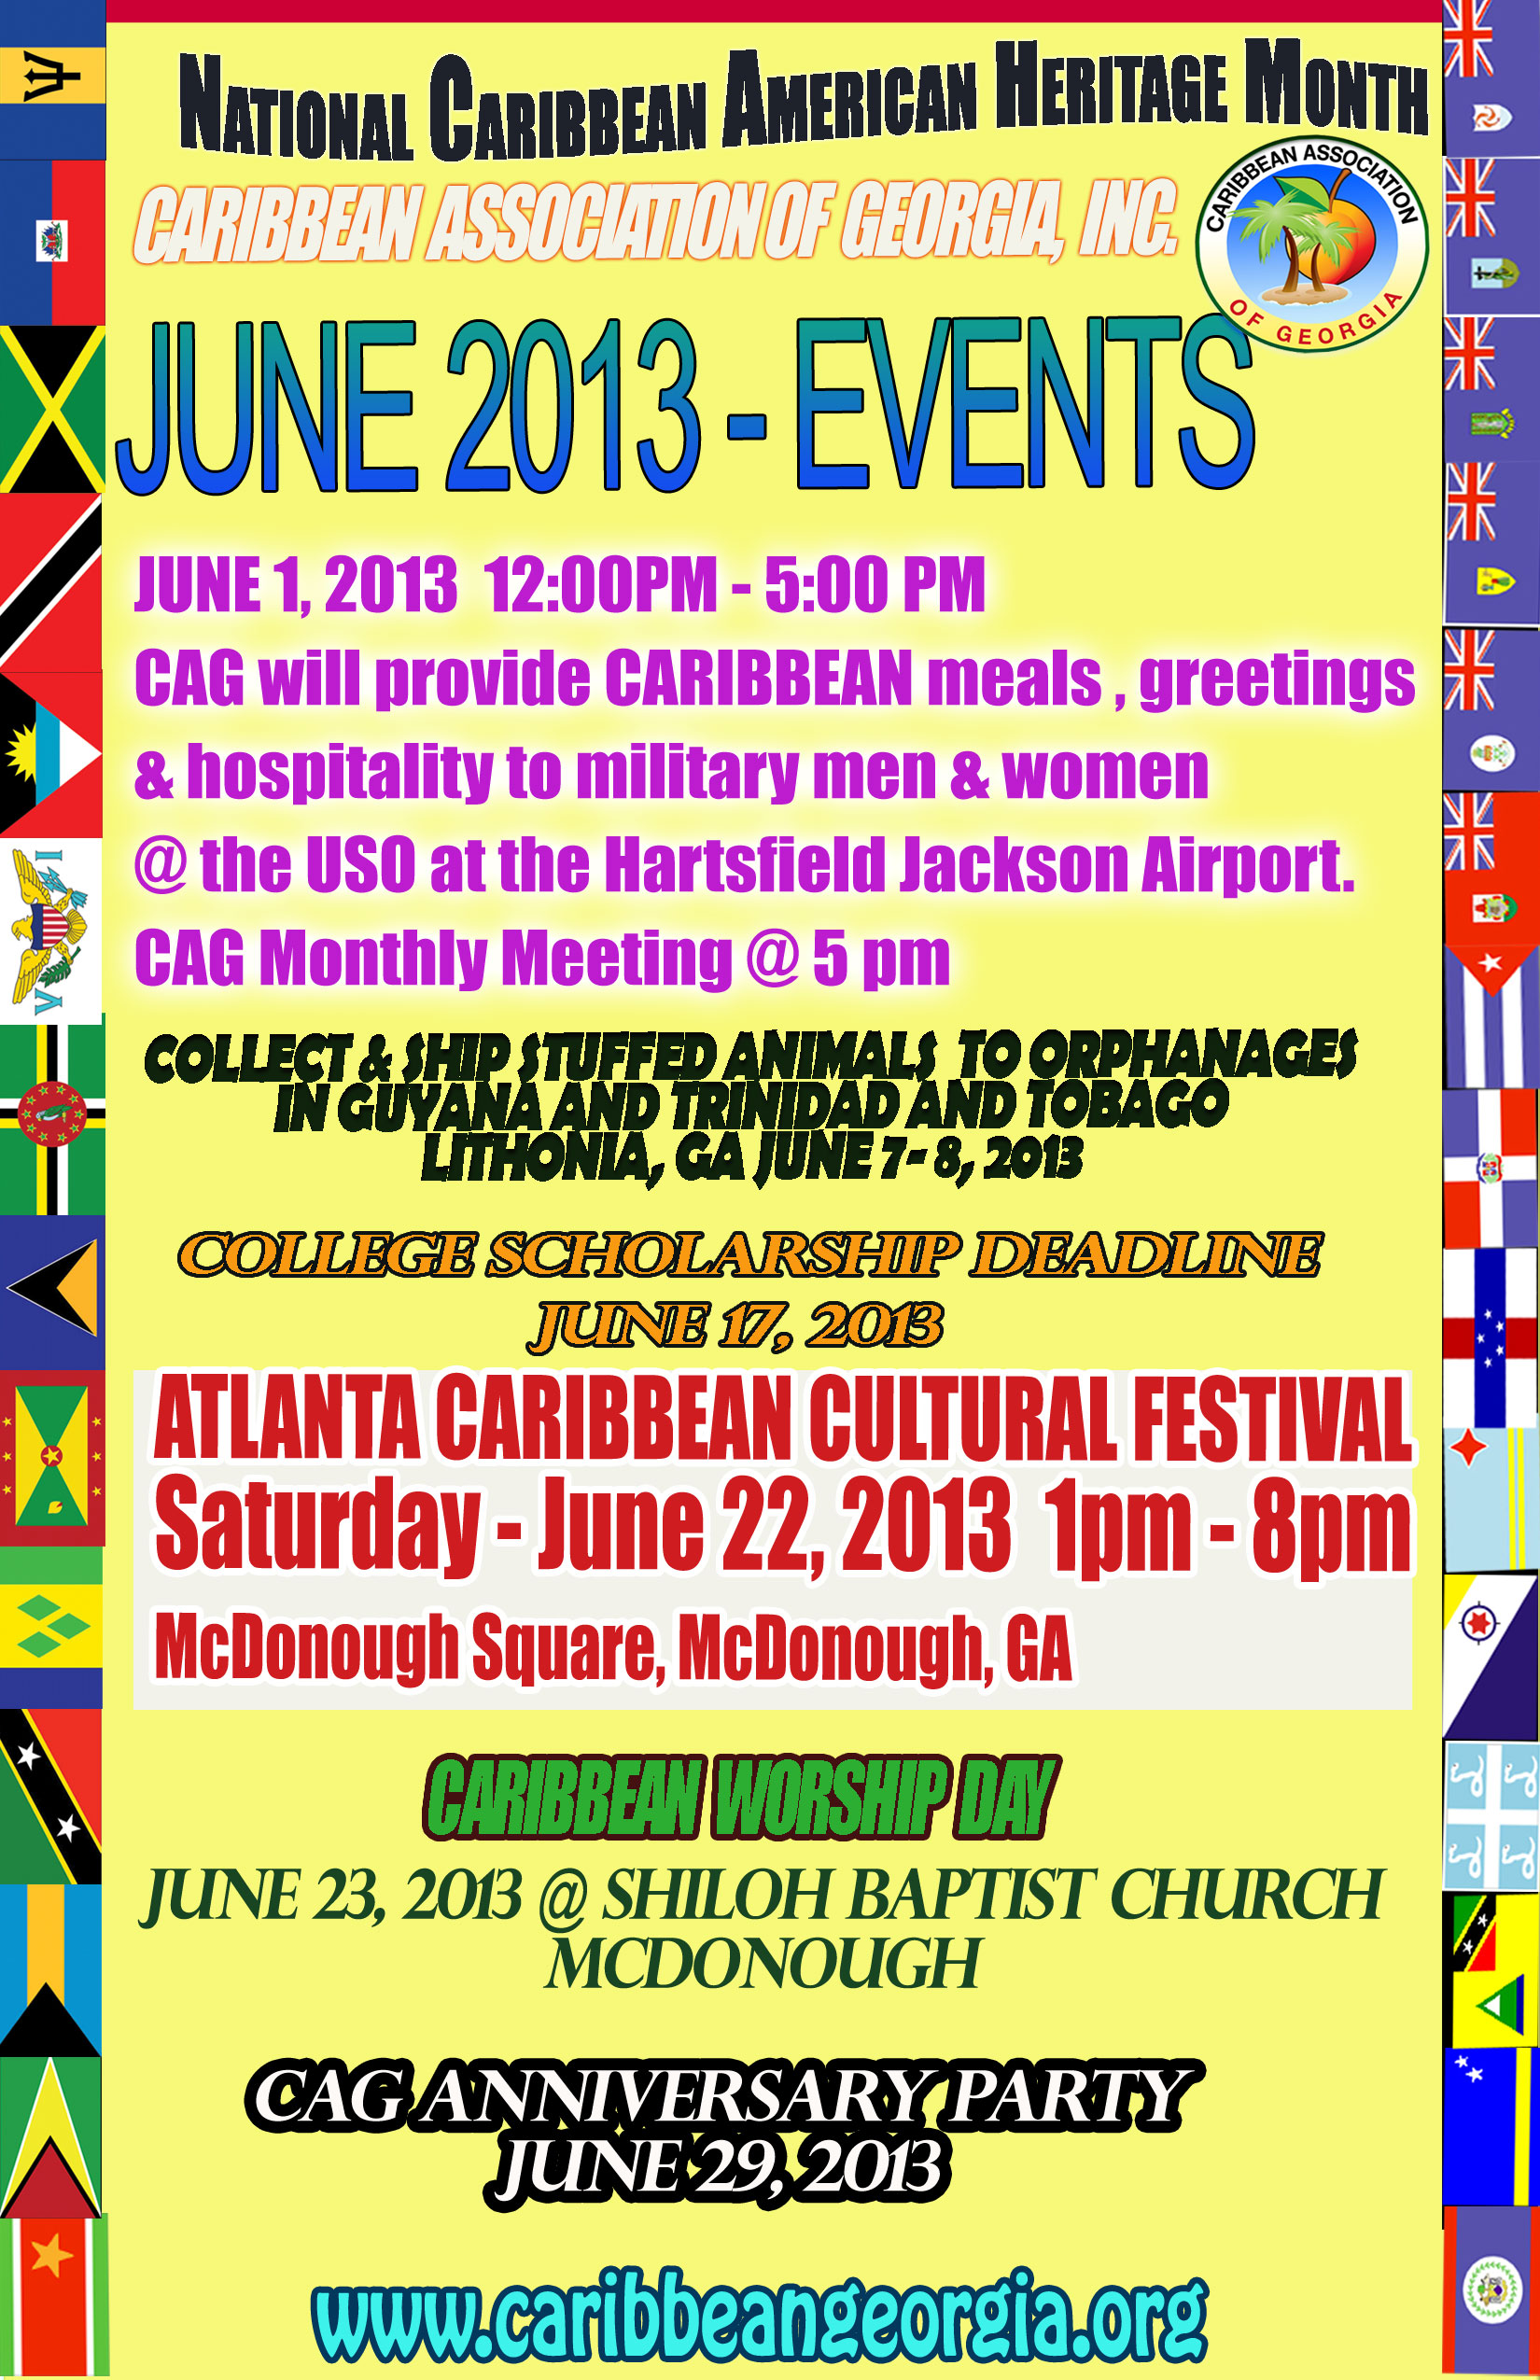 CARIBBEAN-AMERICAN-HERITAGE-MONTH-EVENTS-2013-